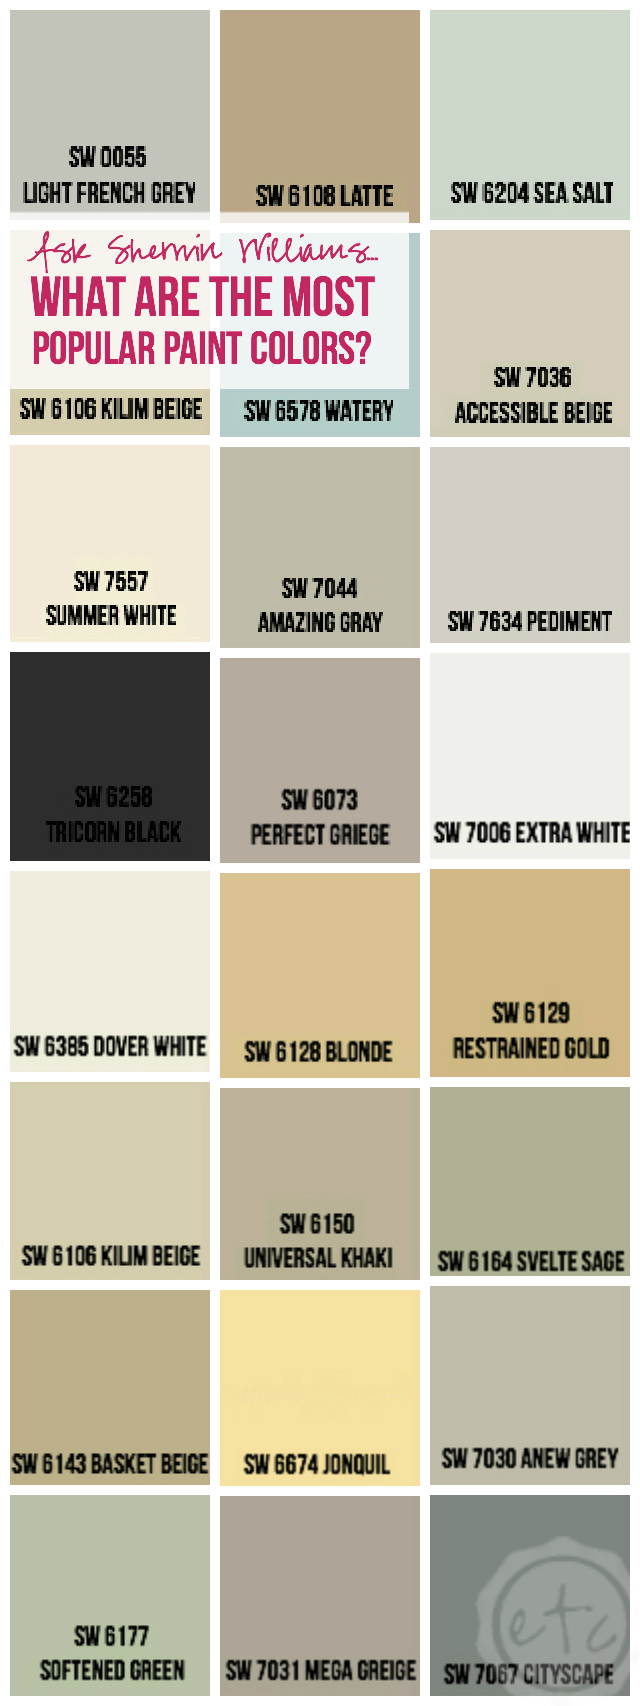 ask sherwin williams what are the most popular paint colors 640x1706. Black Bedroom Furniture Sets. Home Design Ideas